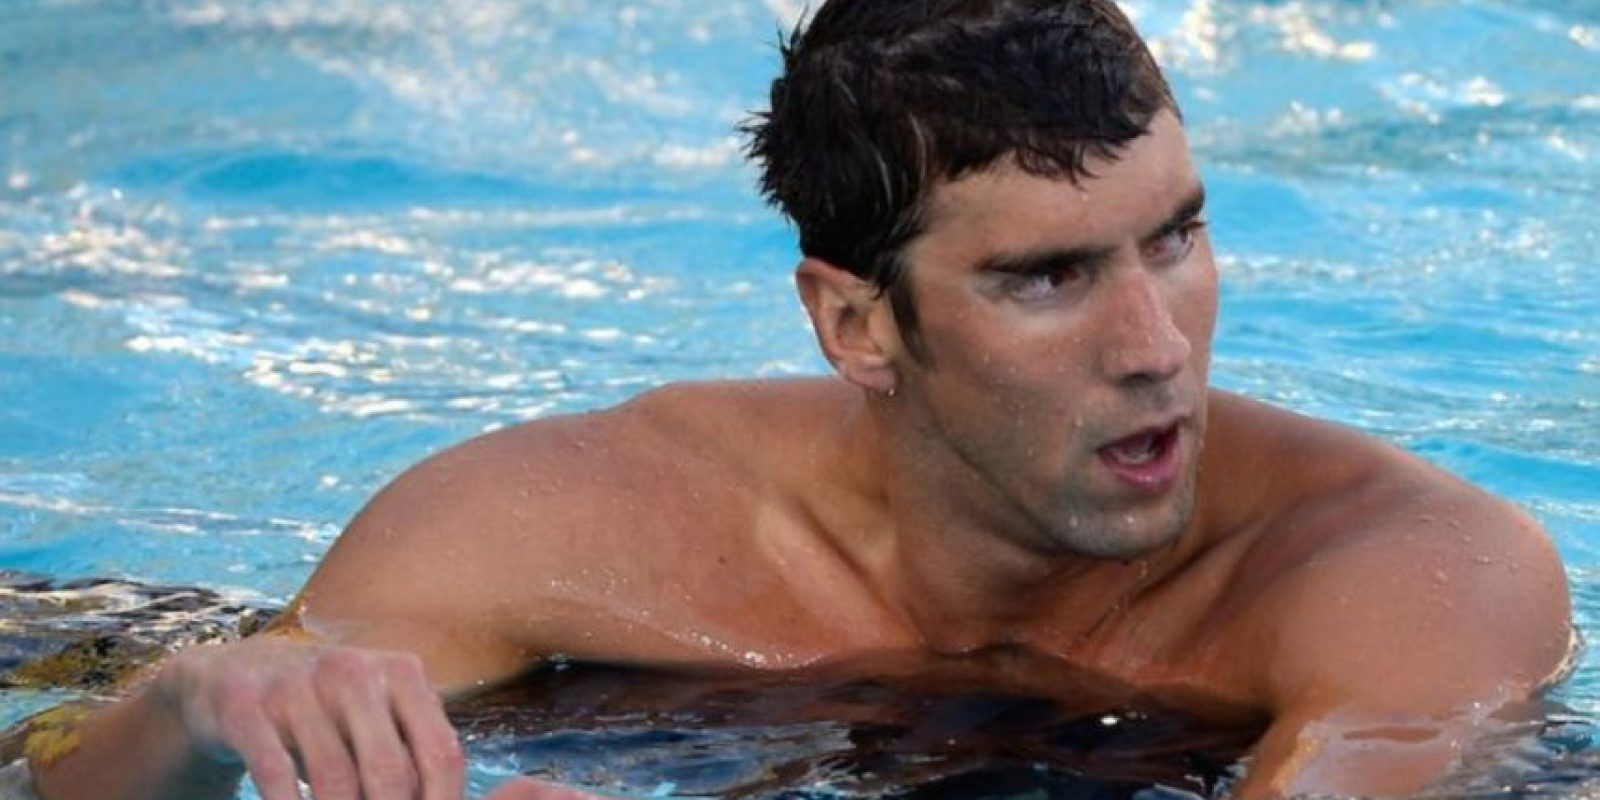 4- Michael Phelps, nadador y multimedallista olímpico estadounidense. Foto: Getty Images